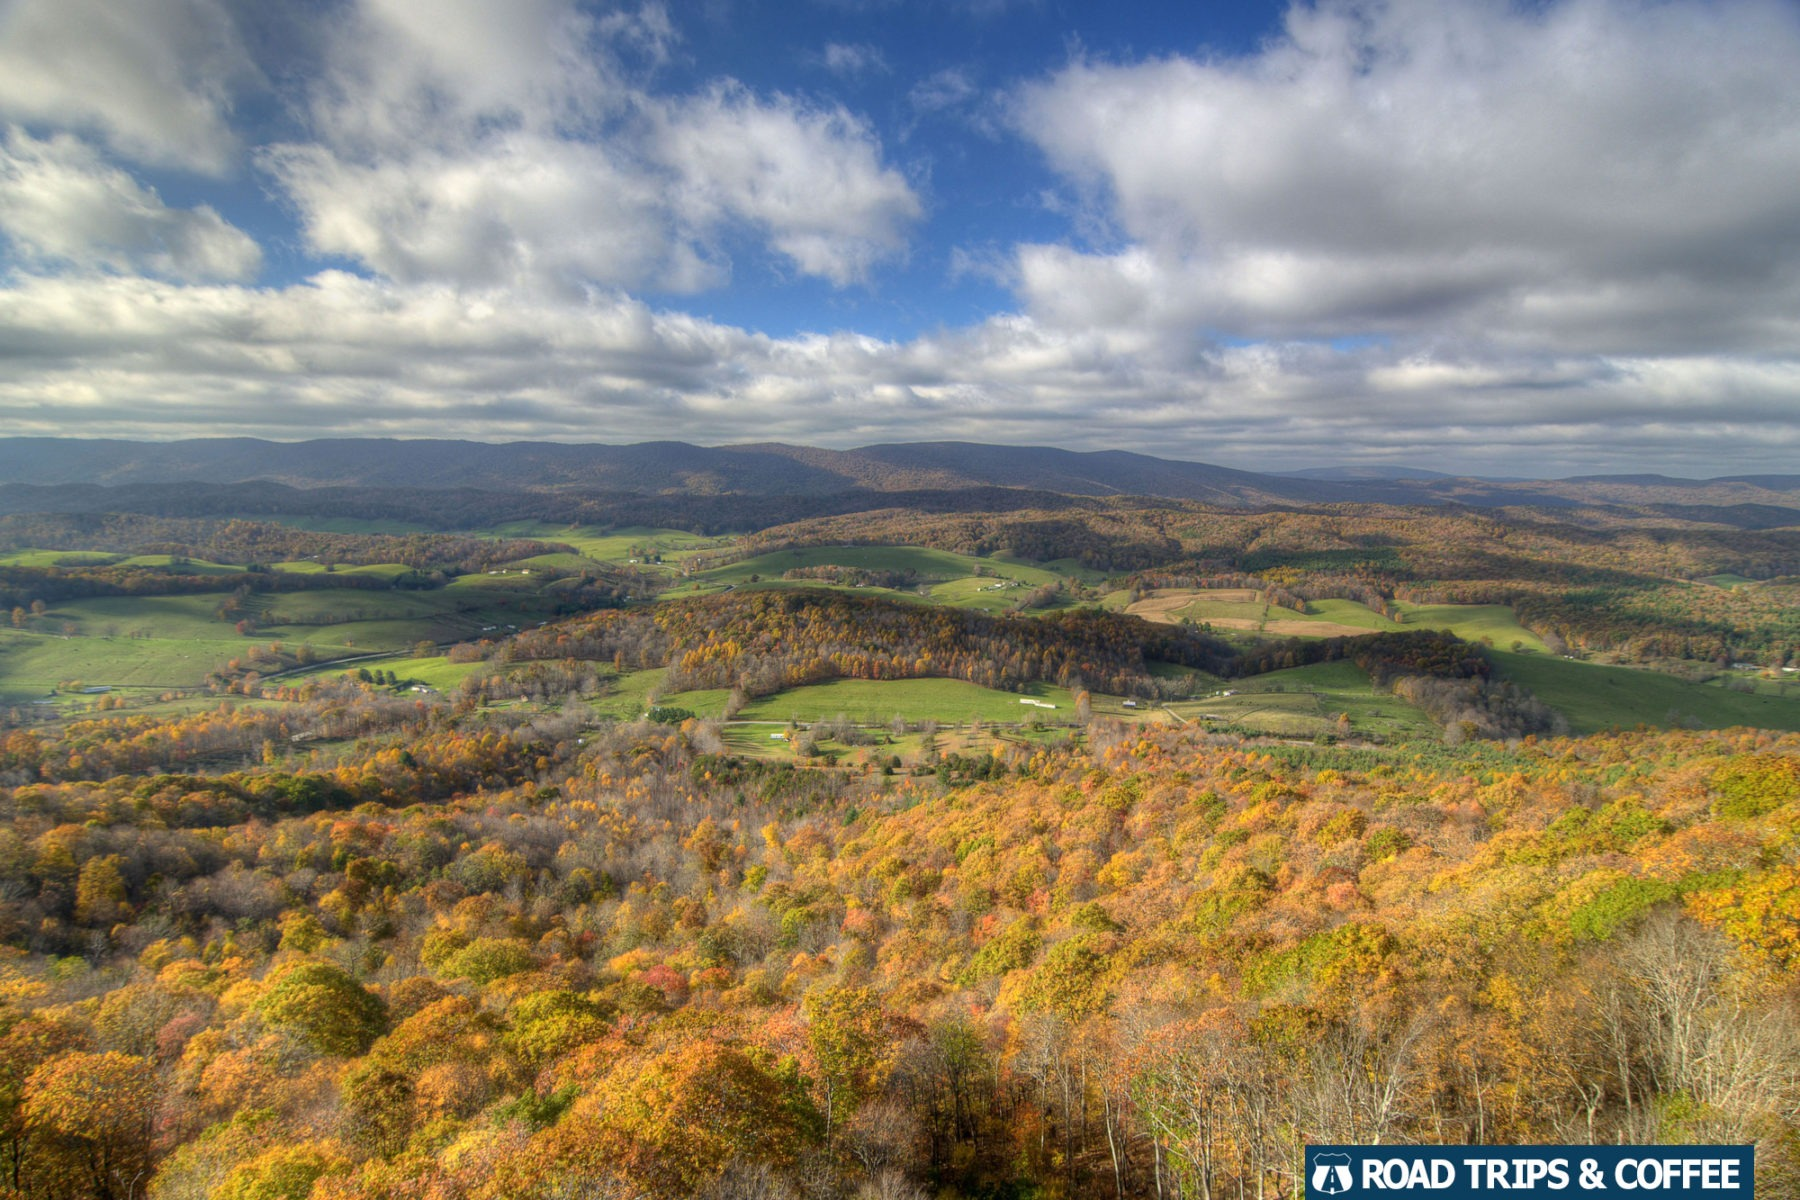 Fall colors begin to peak across the valley and mountains beneath the Big Walker Lookout in Wytheville, Virginia